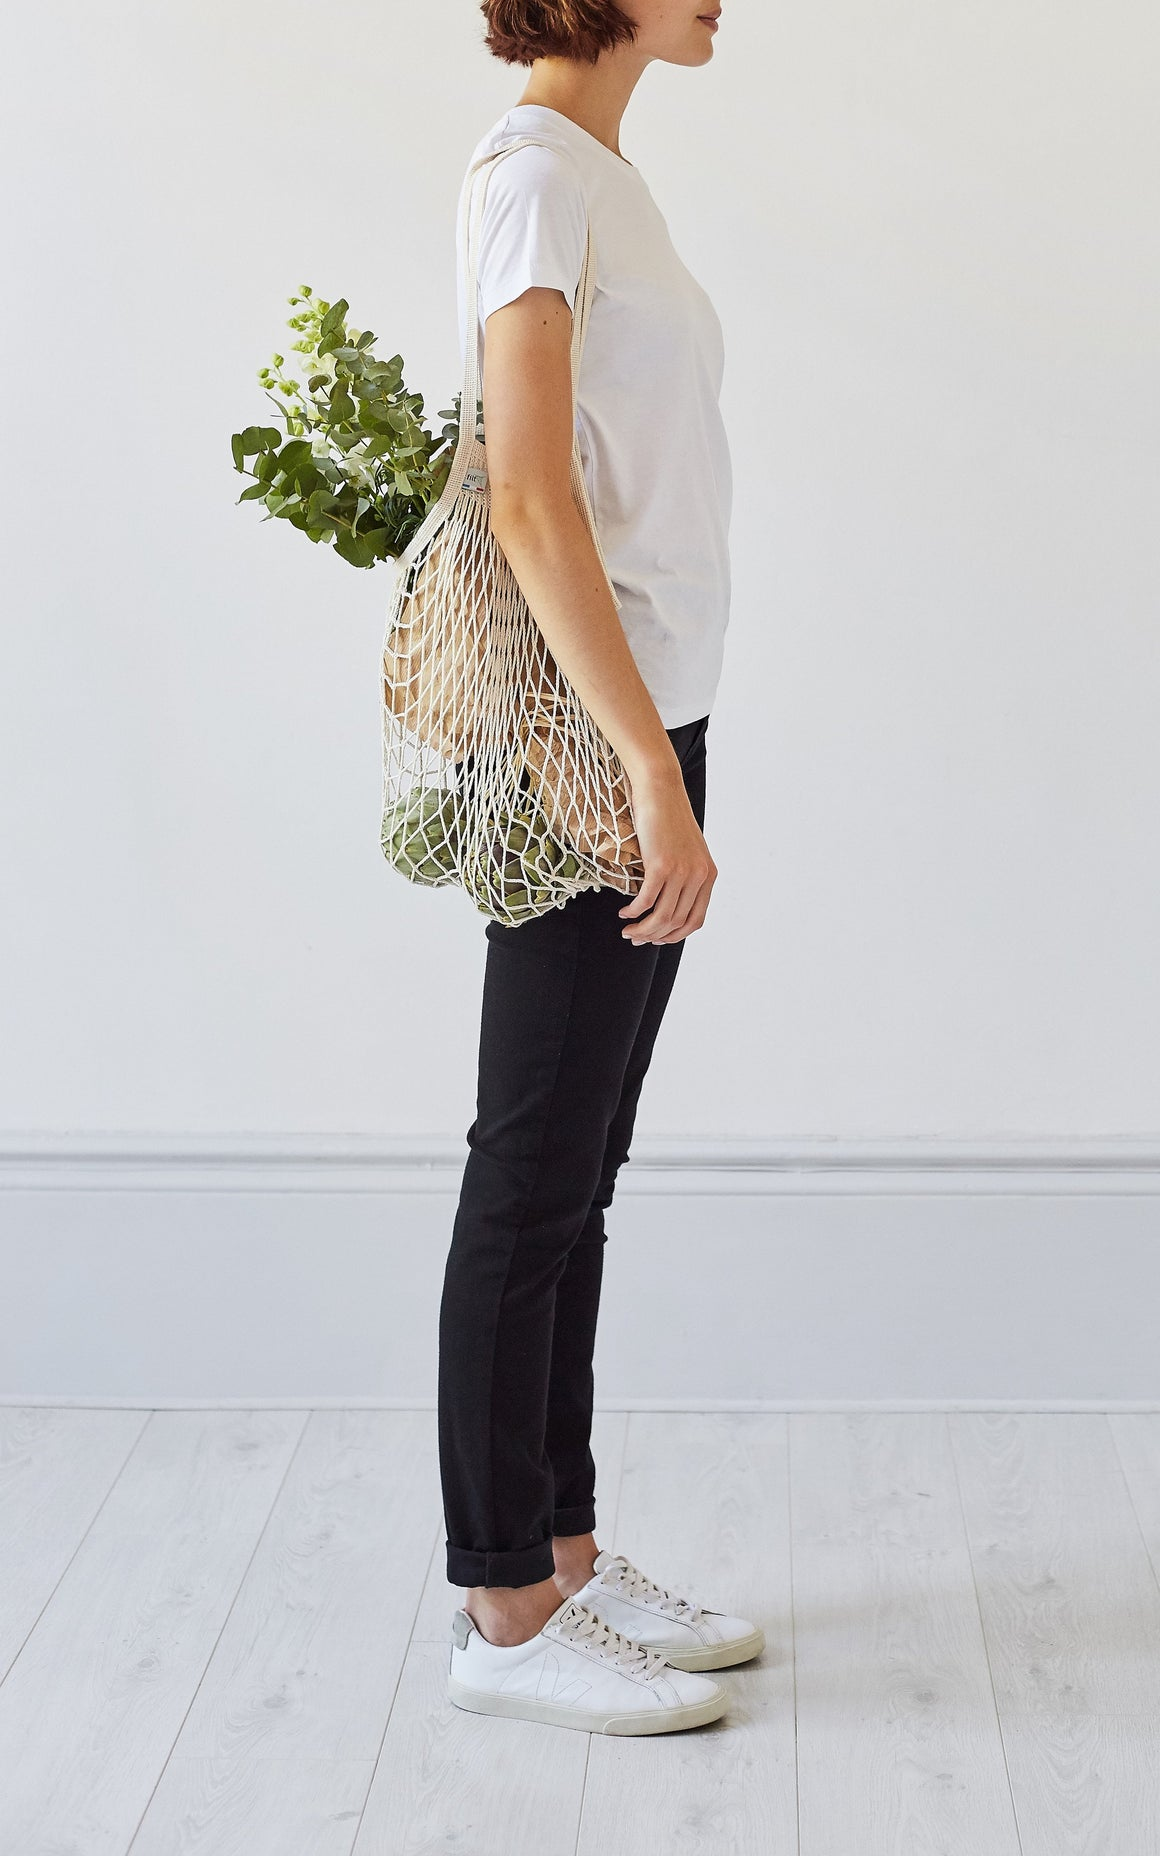 French Net Market Bag - Long Handle, Net Bag - Grace Gordon